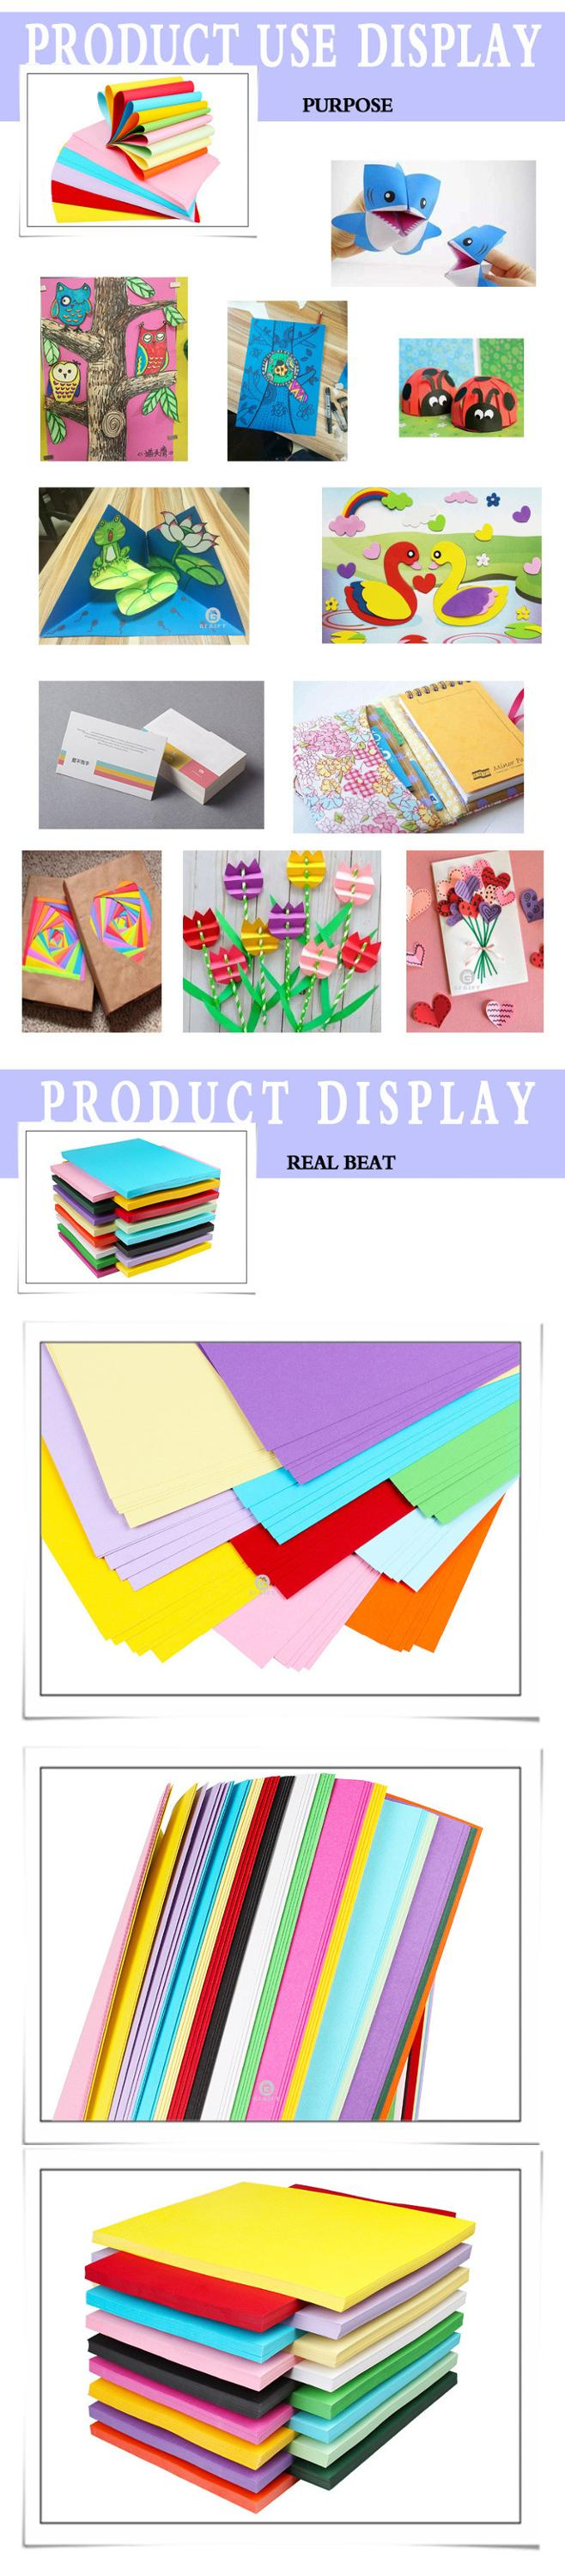 specifications blue cardstock notebook end stationery dark book covers 200gsm-300gsm types per color cardboard paper